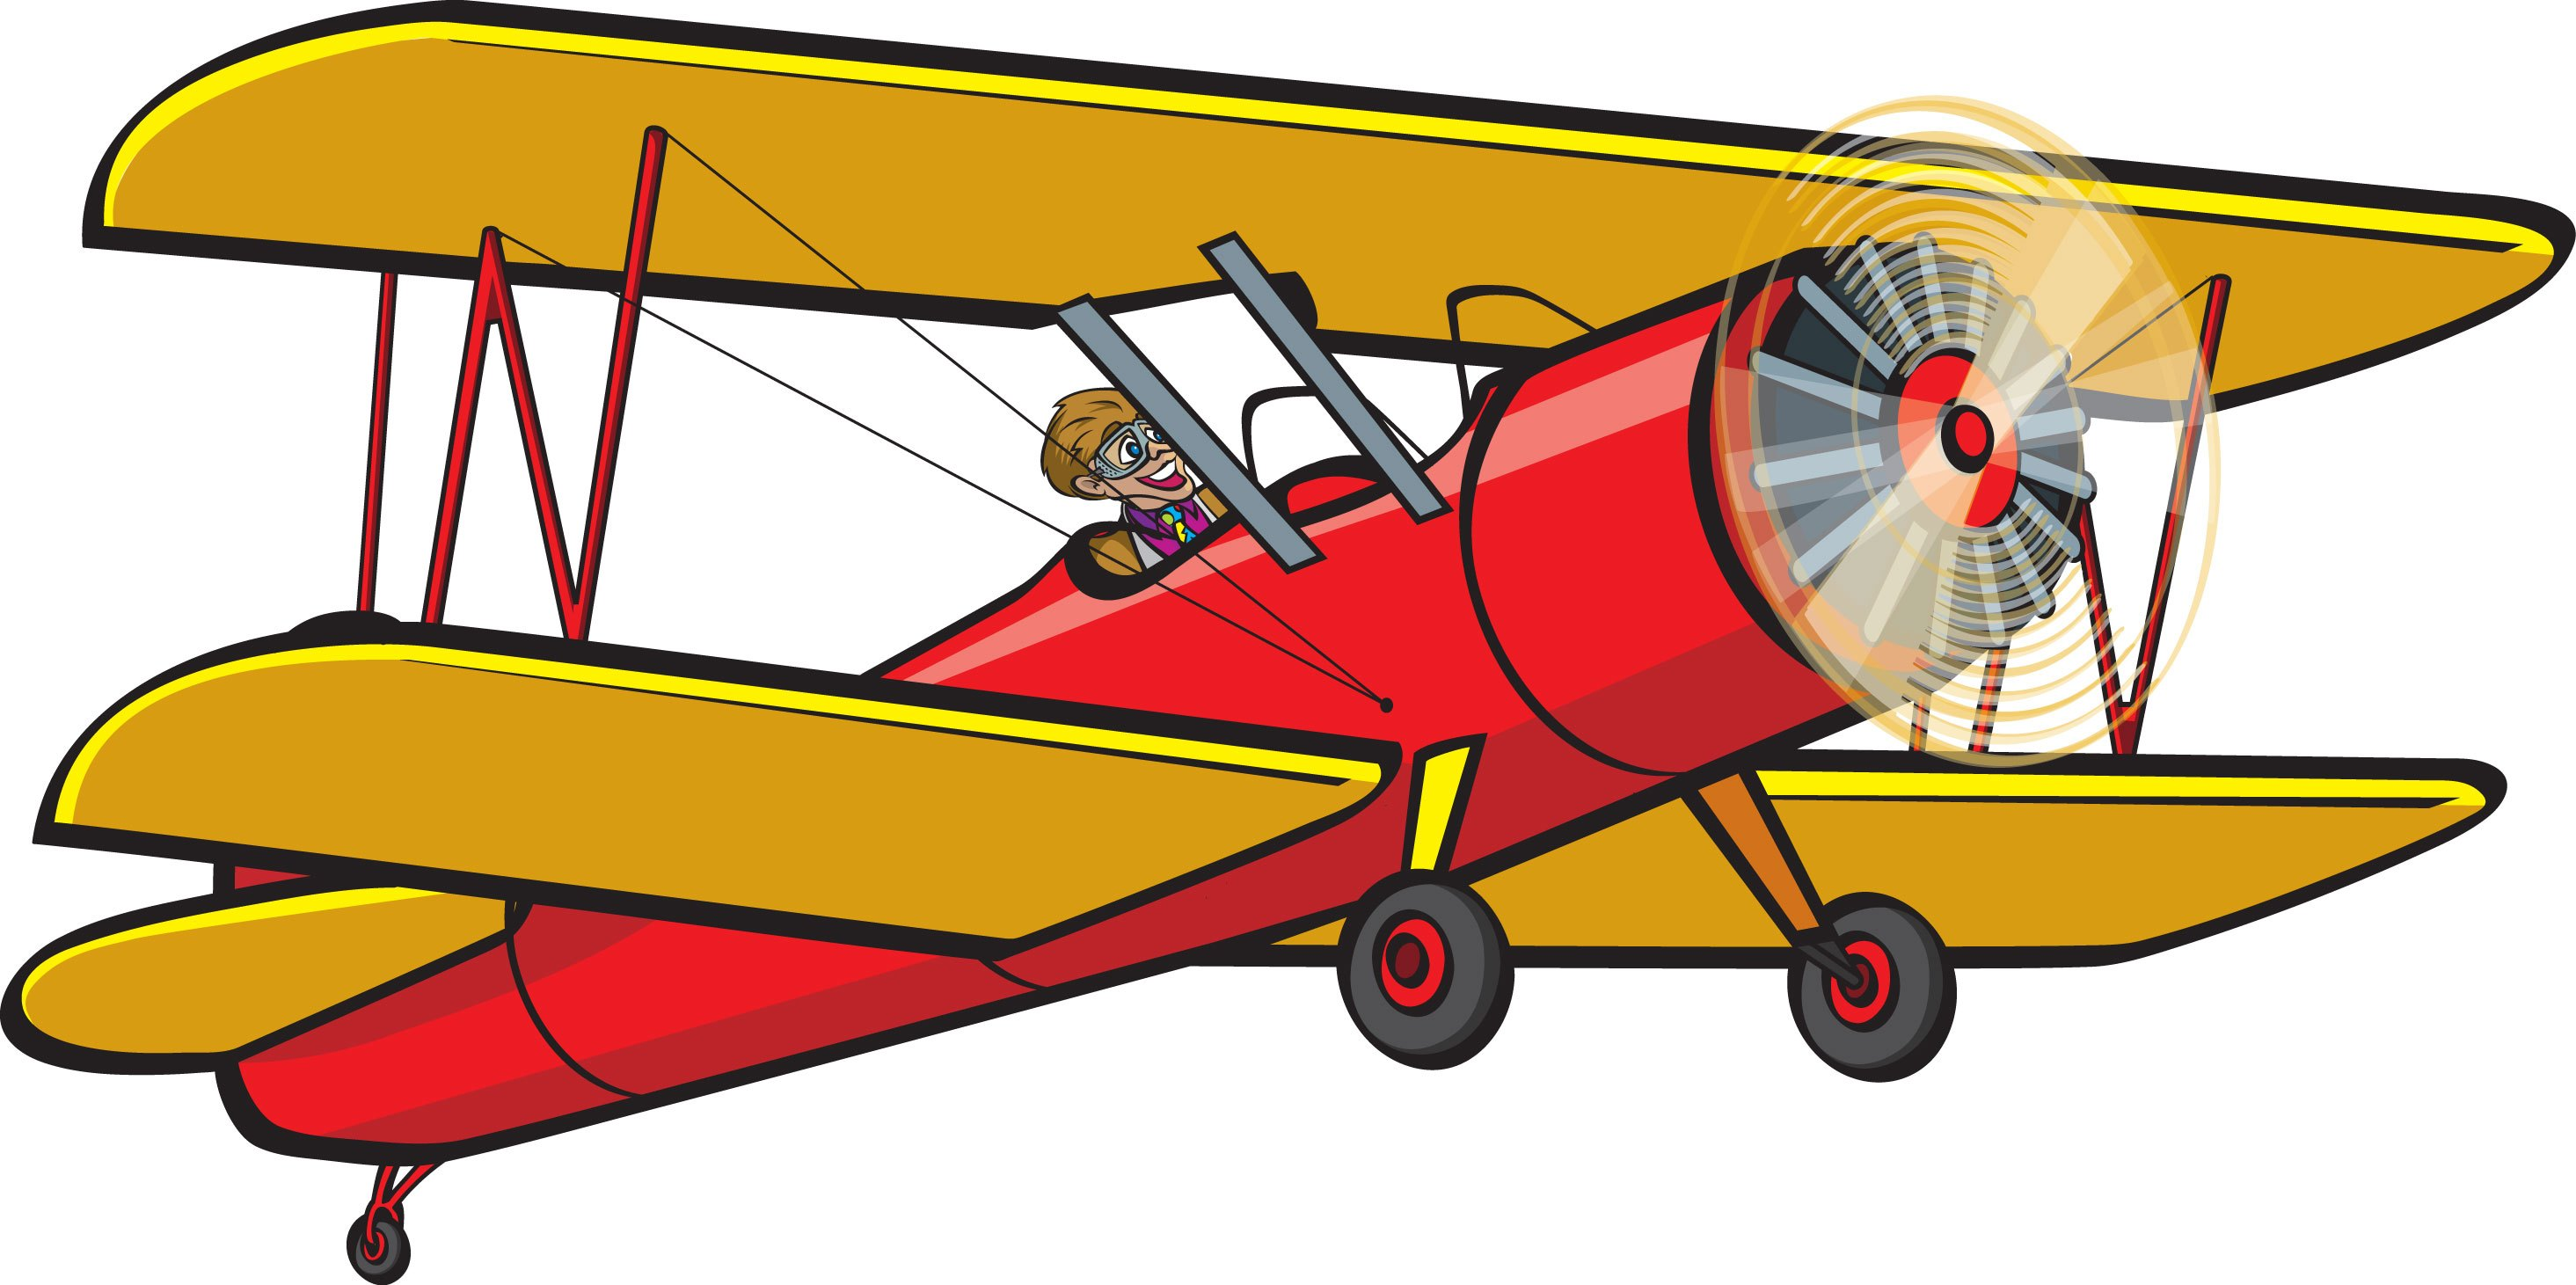 Old plane clipart 6 » Clipart Portal.